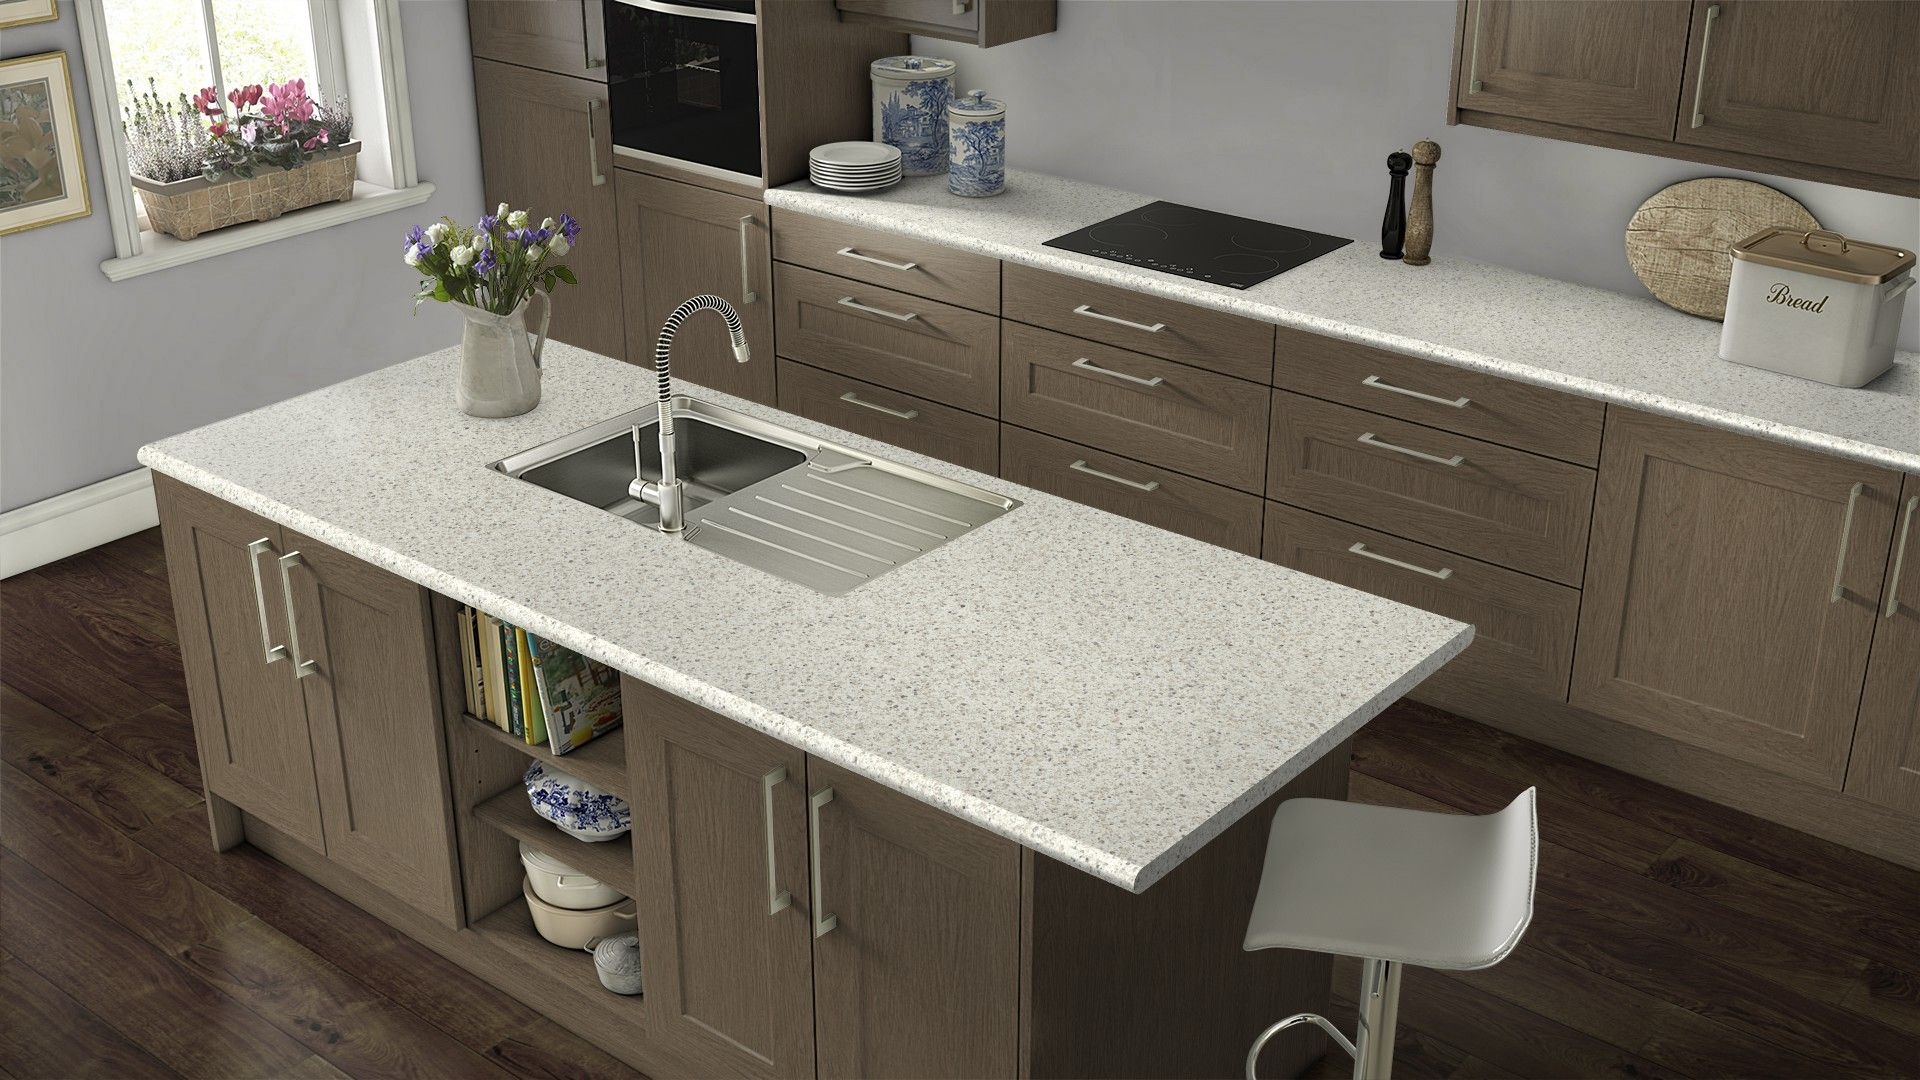 Leche Vesta With The Wood Color Cabinet Get Inspired For Your Kitchen Renovation Wilsonart S Free Visualizer